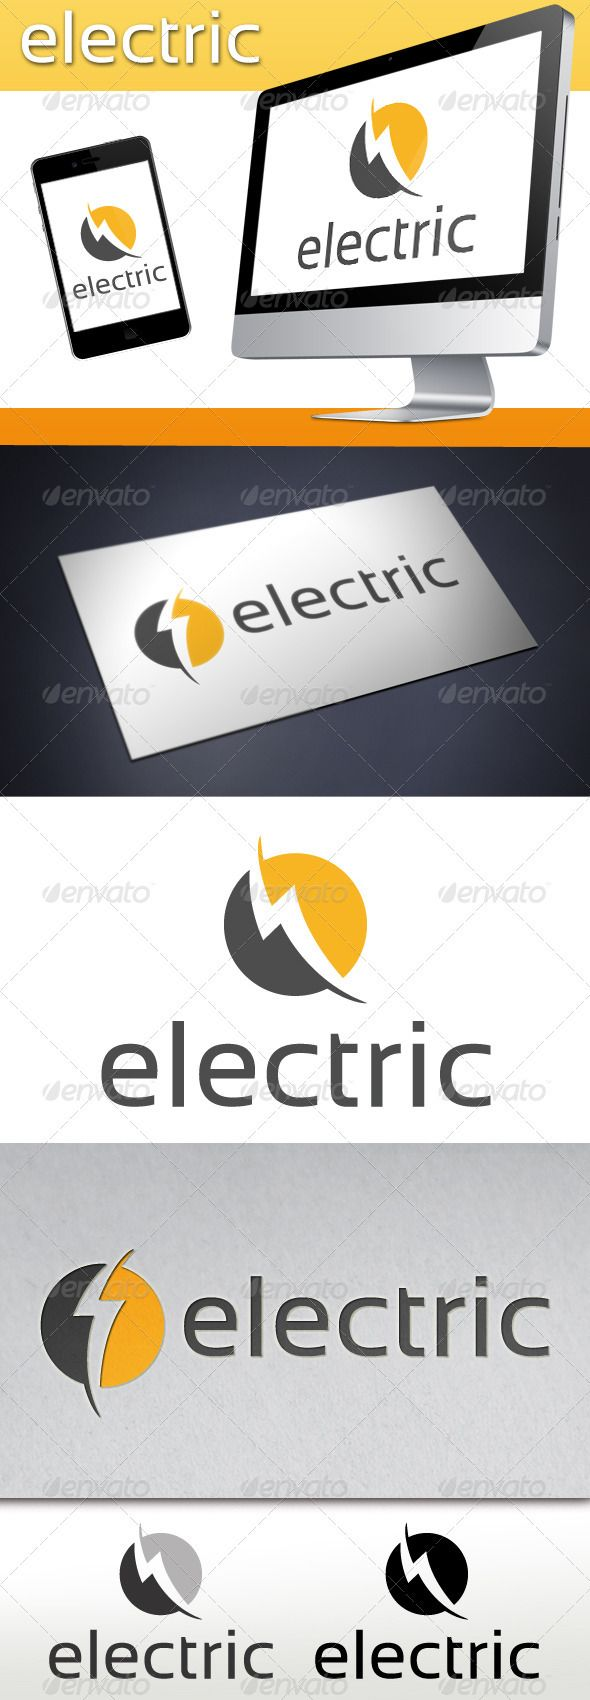 Royal Electric Company  Serving Northern California and